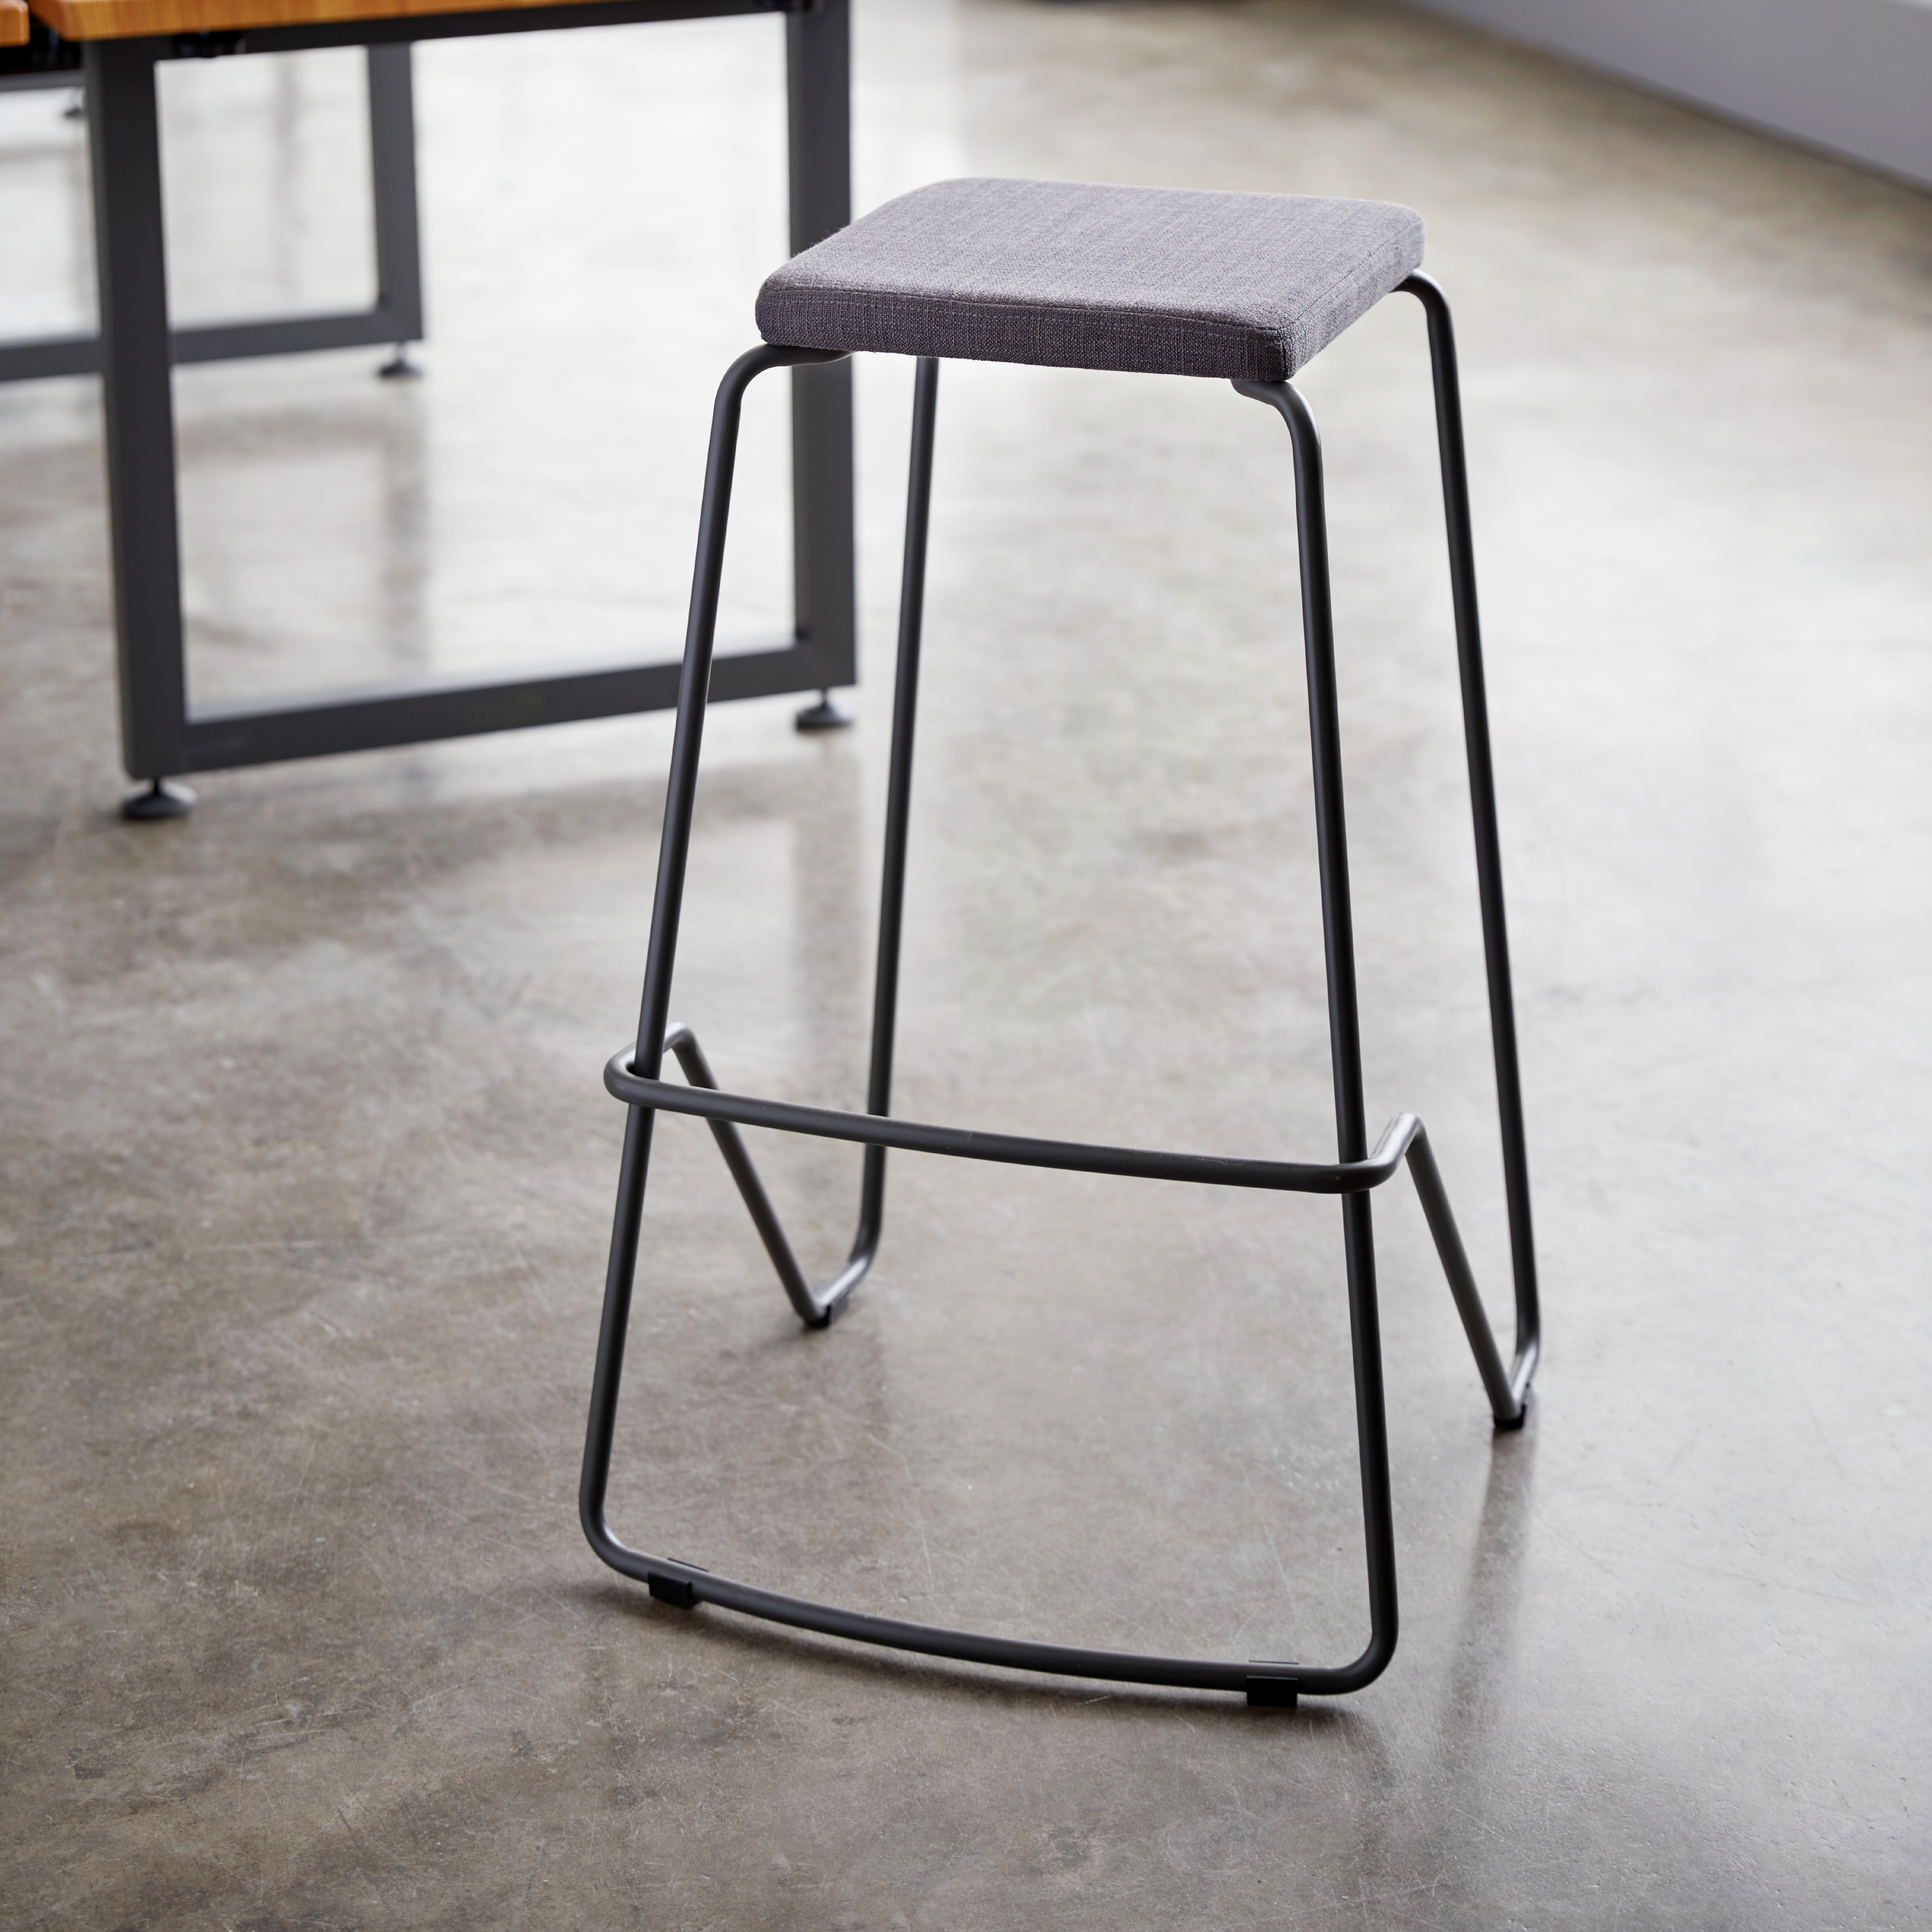 Awe Inspiring Backless Bar 28 33 Bar Stools Youll Love In 2019 Wayfair Gamerscity Chair Design For Home Gamerscityorg